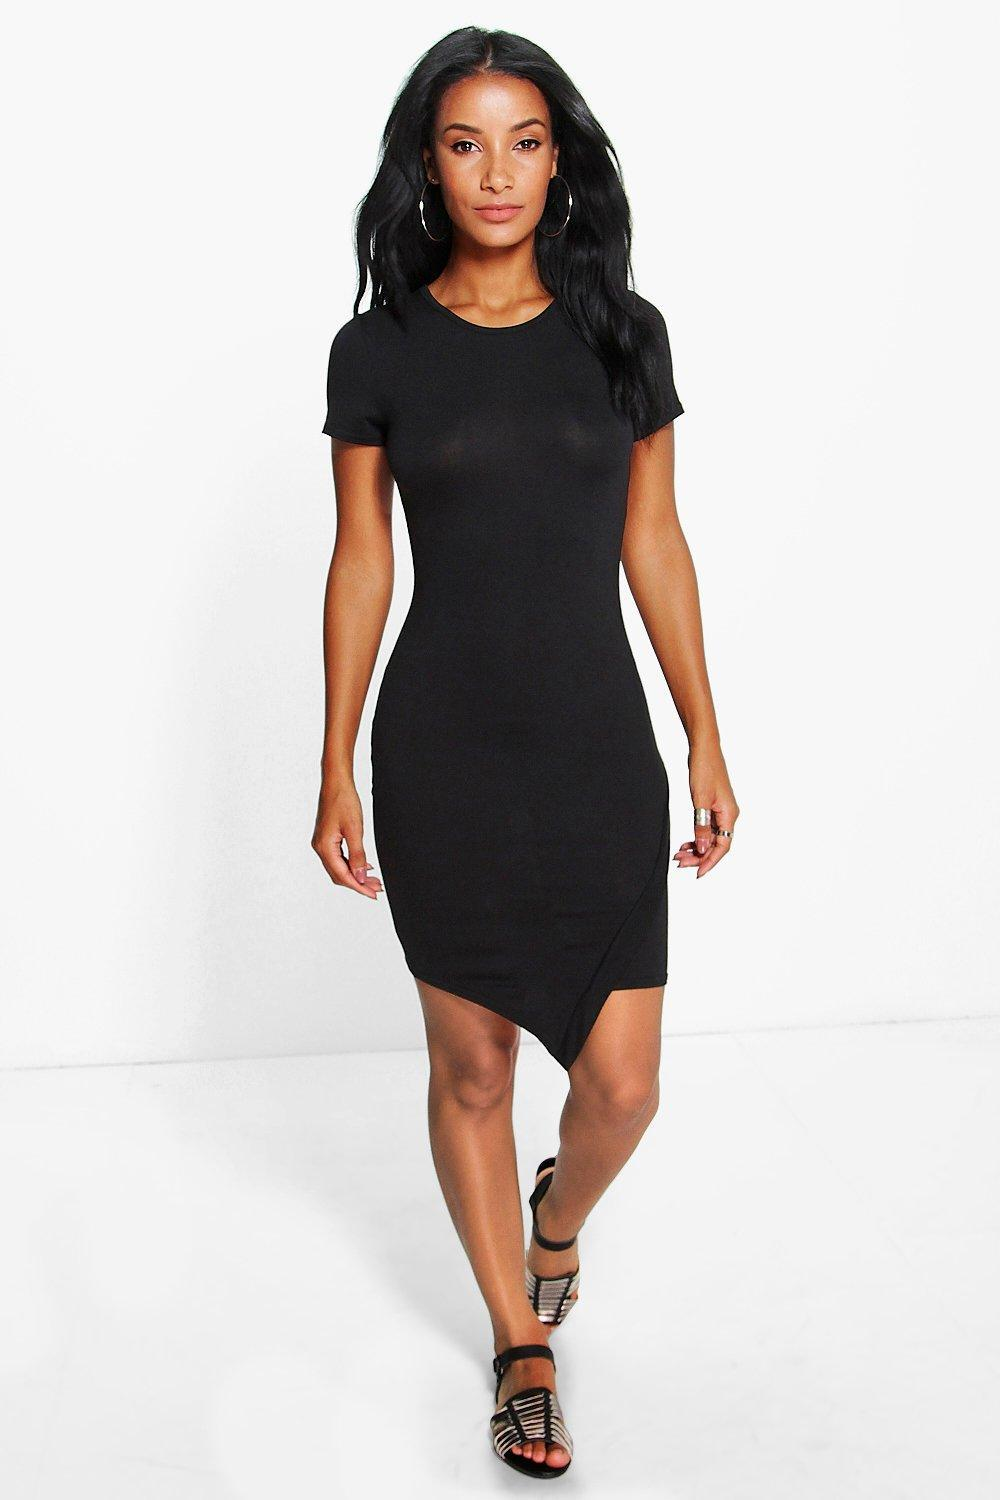 Asymetic Bodycon Dress Black - fit: tight; pattern: plain; style: bodycon; predominant colour: black; occasions: evening; length: just above the knee; fibres: viscose/rayon - stretch; neckline: crew; sleeve length: short sleeve; sleeve style: standard; texture group: jersey - clingy; pattern type: fabric; season: s/s 2016